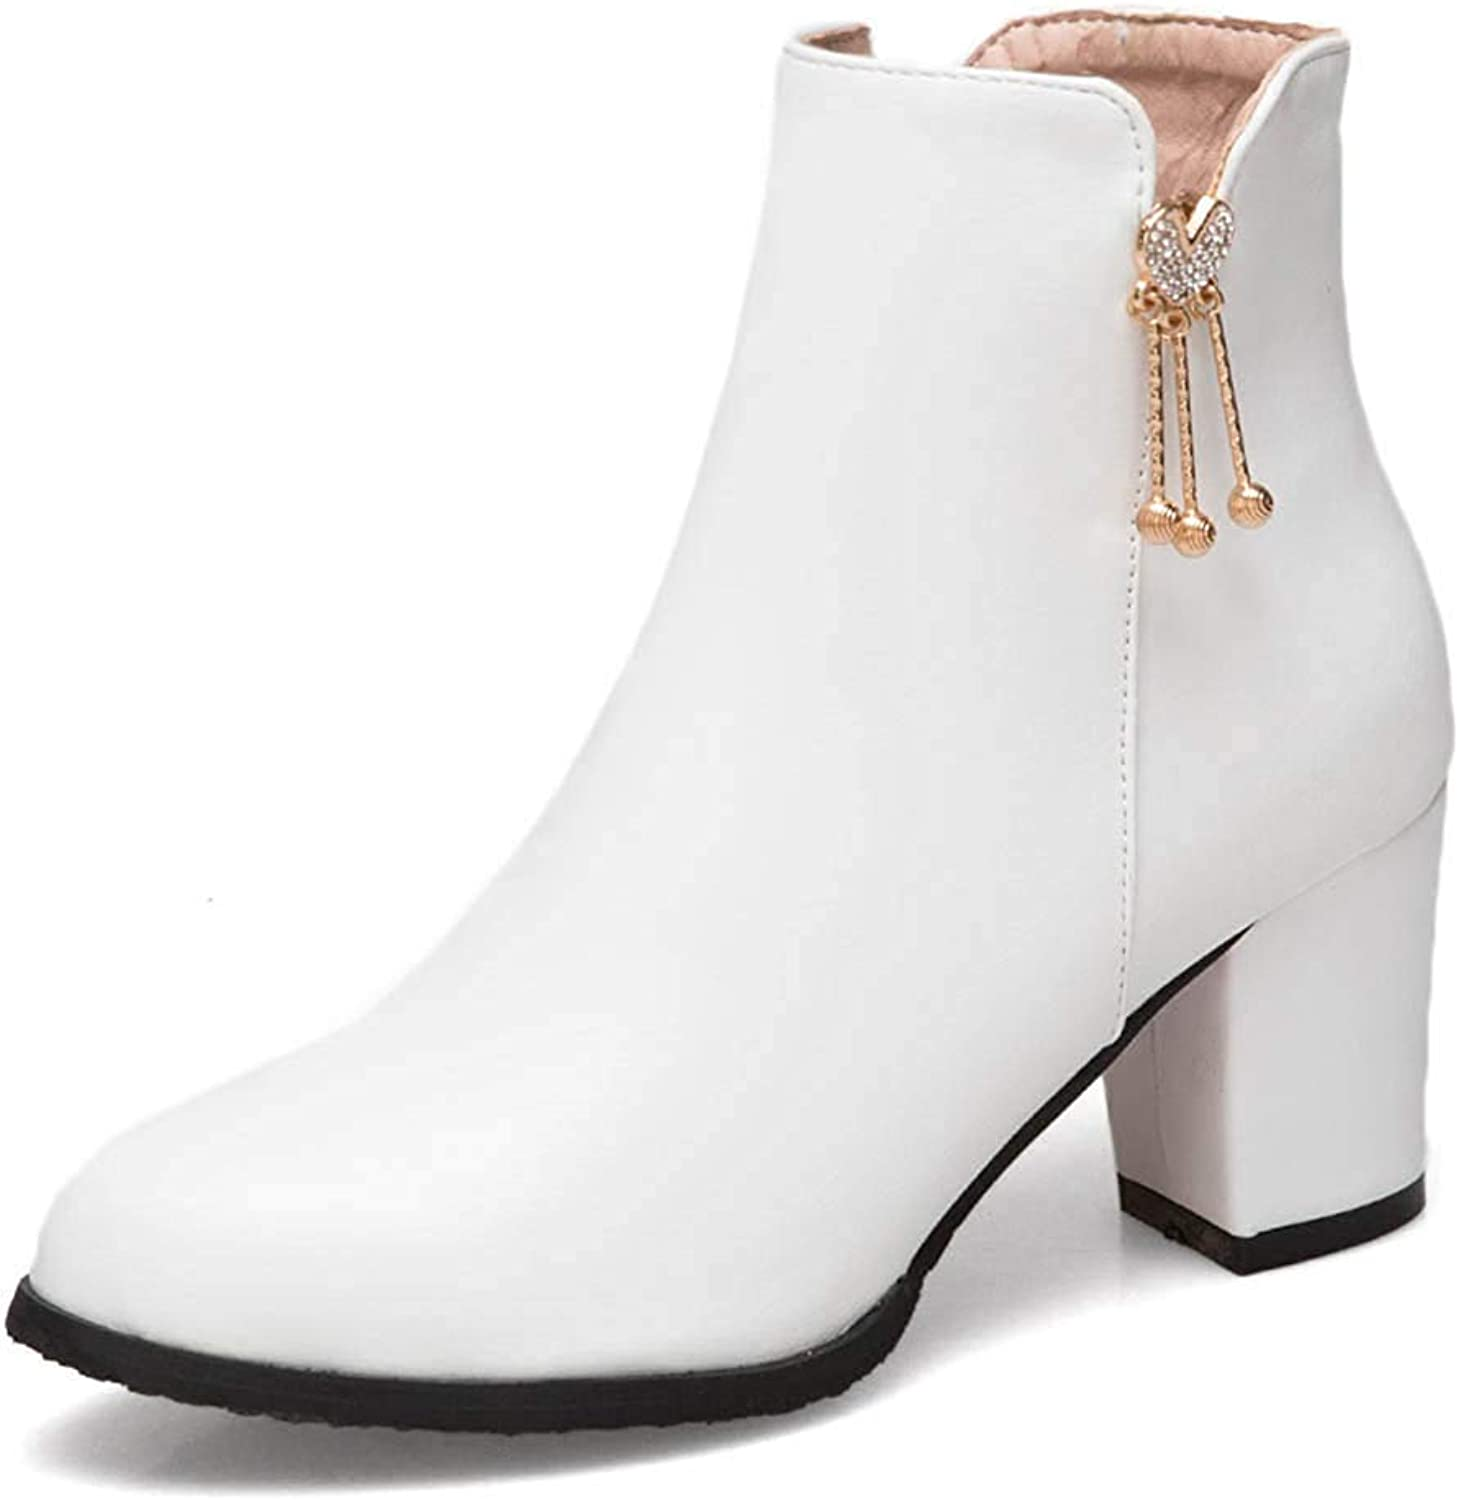 Unm Women's Rhinestone Pendant Mid Chunky Heel Round Toe Dress Ankle Boots with Zipper